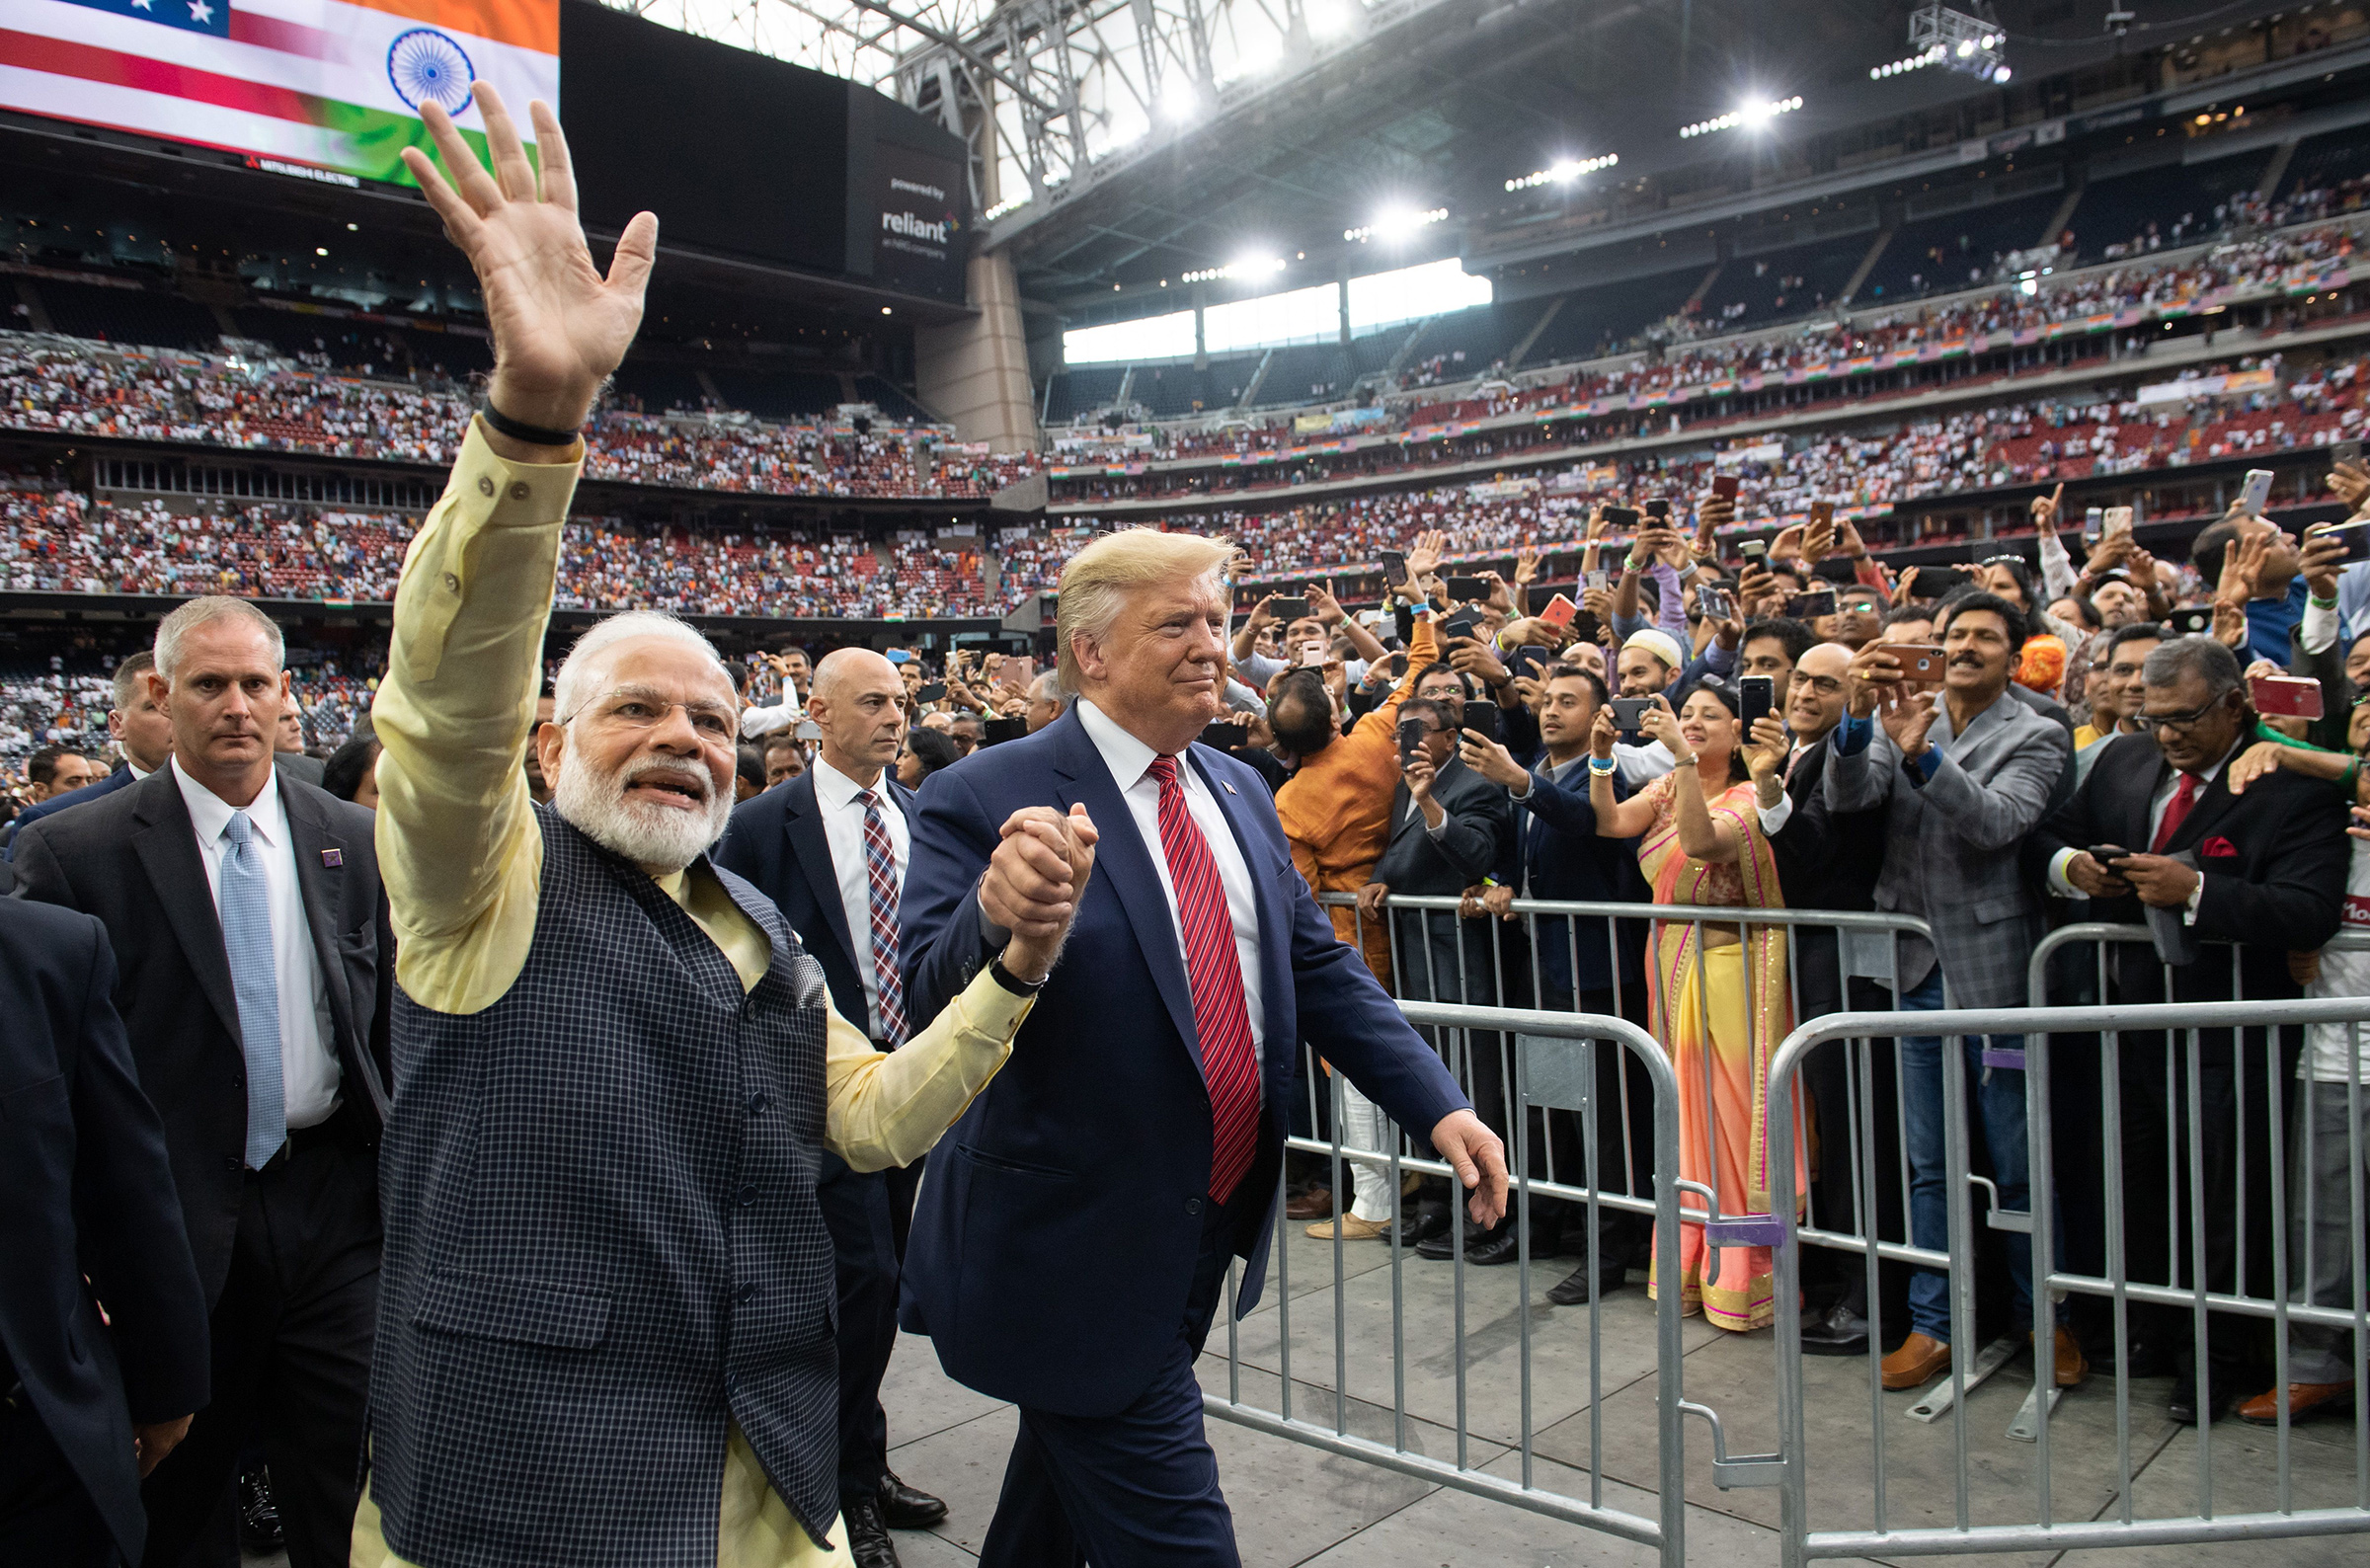 Trump and Modi attend  Howdy, Modi!  at NRG Stadium in Houston on Sept. 22, 2019. Tens of thousands of Indian-Americans converged for an unusual joint rally, a symbol of the bond between the two leaders.